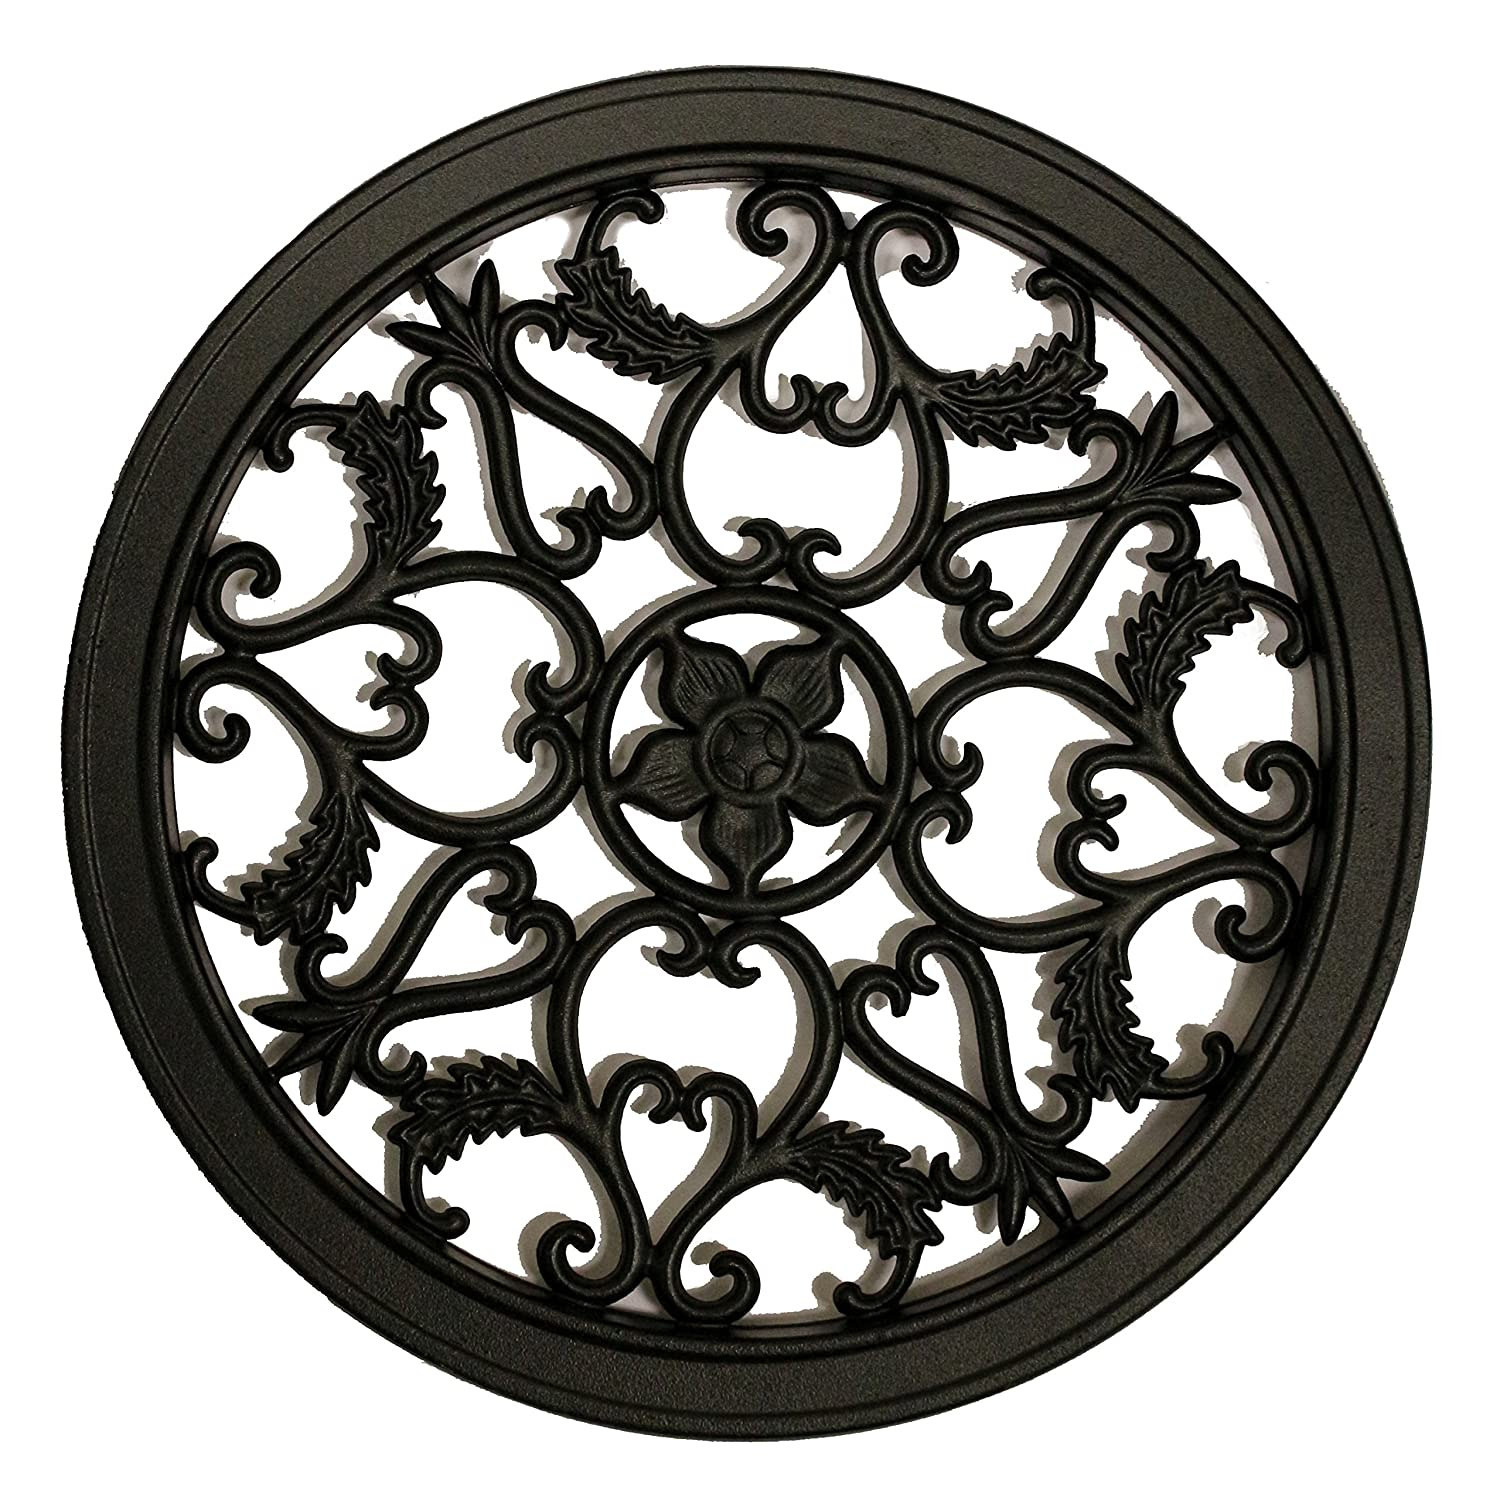 Nuvo Iron Round Decorative Insert for Fencing, Gates, Home, Garden ACW55